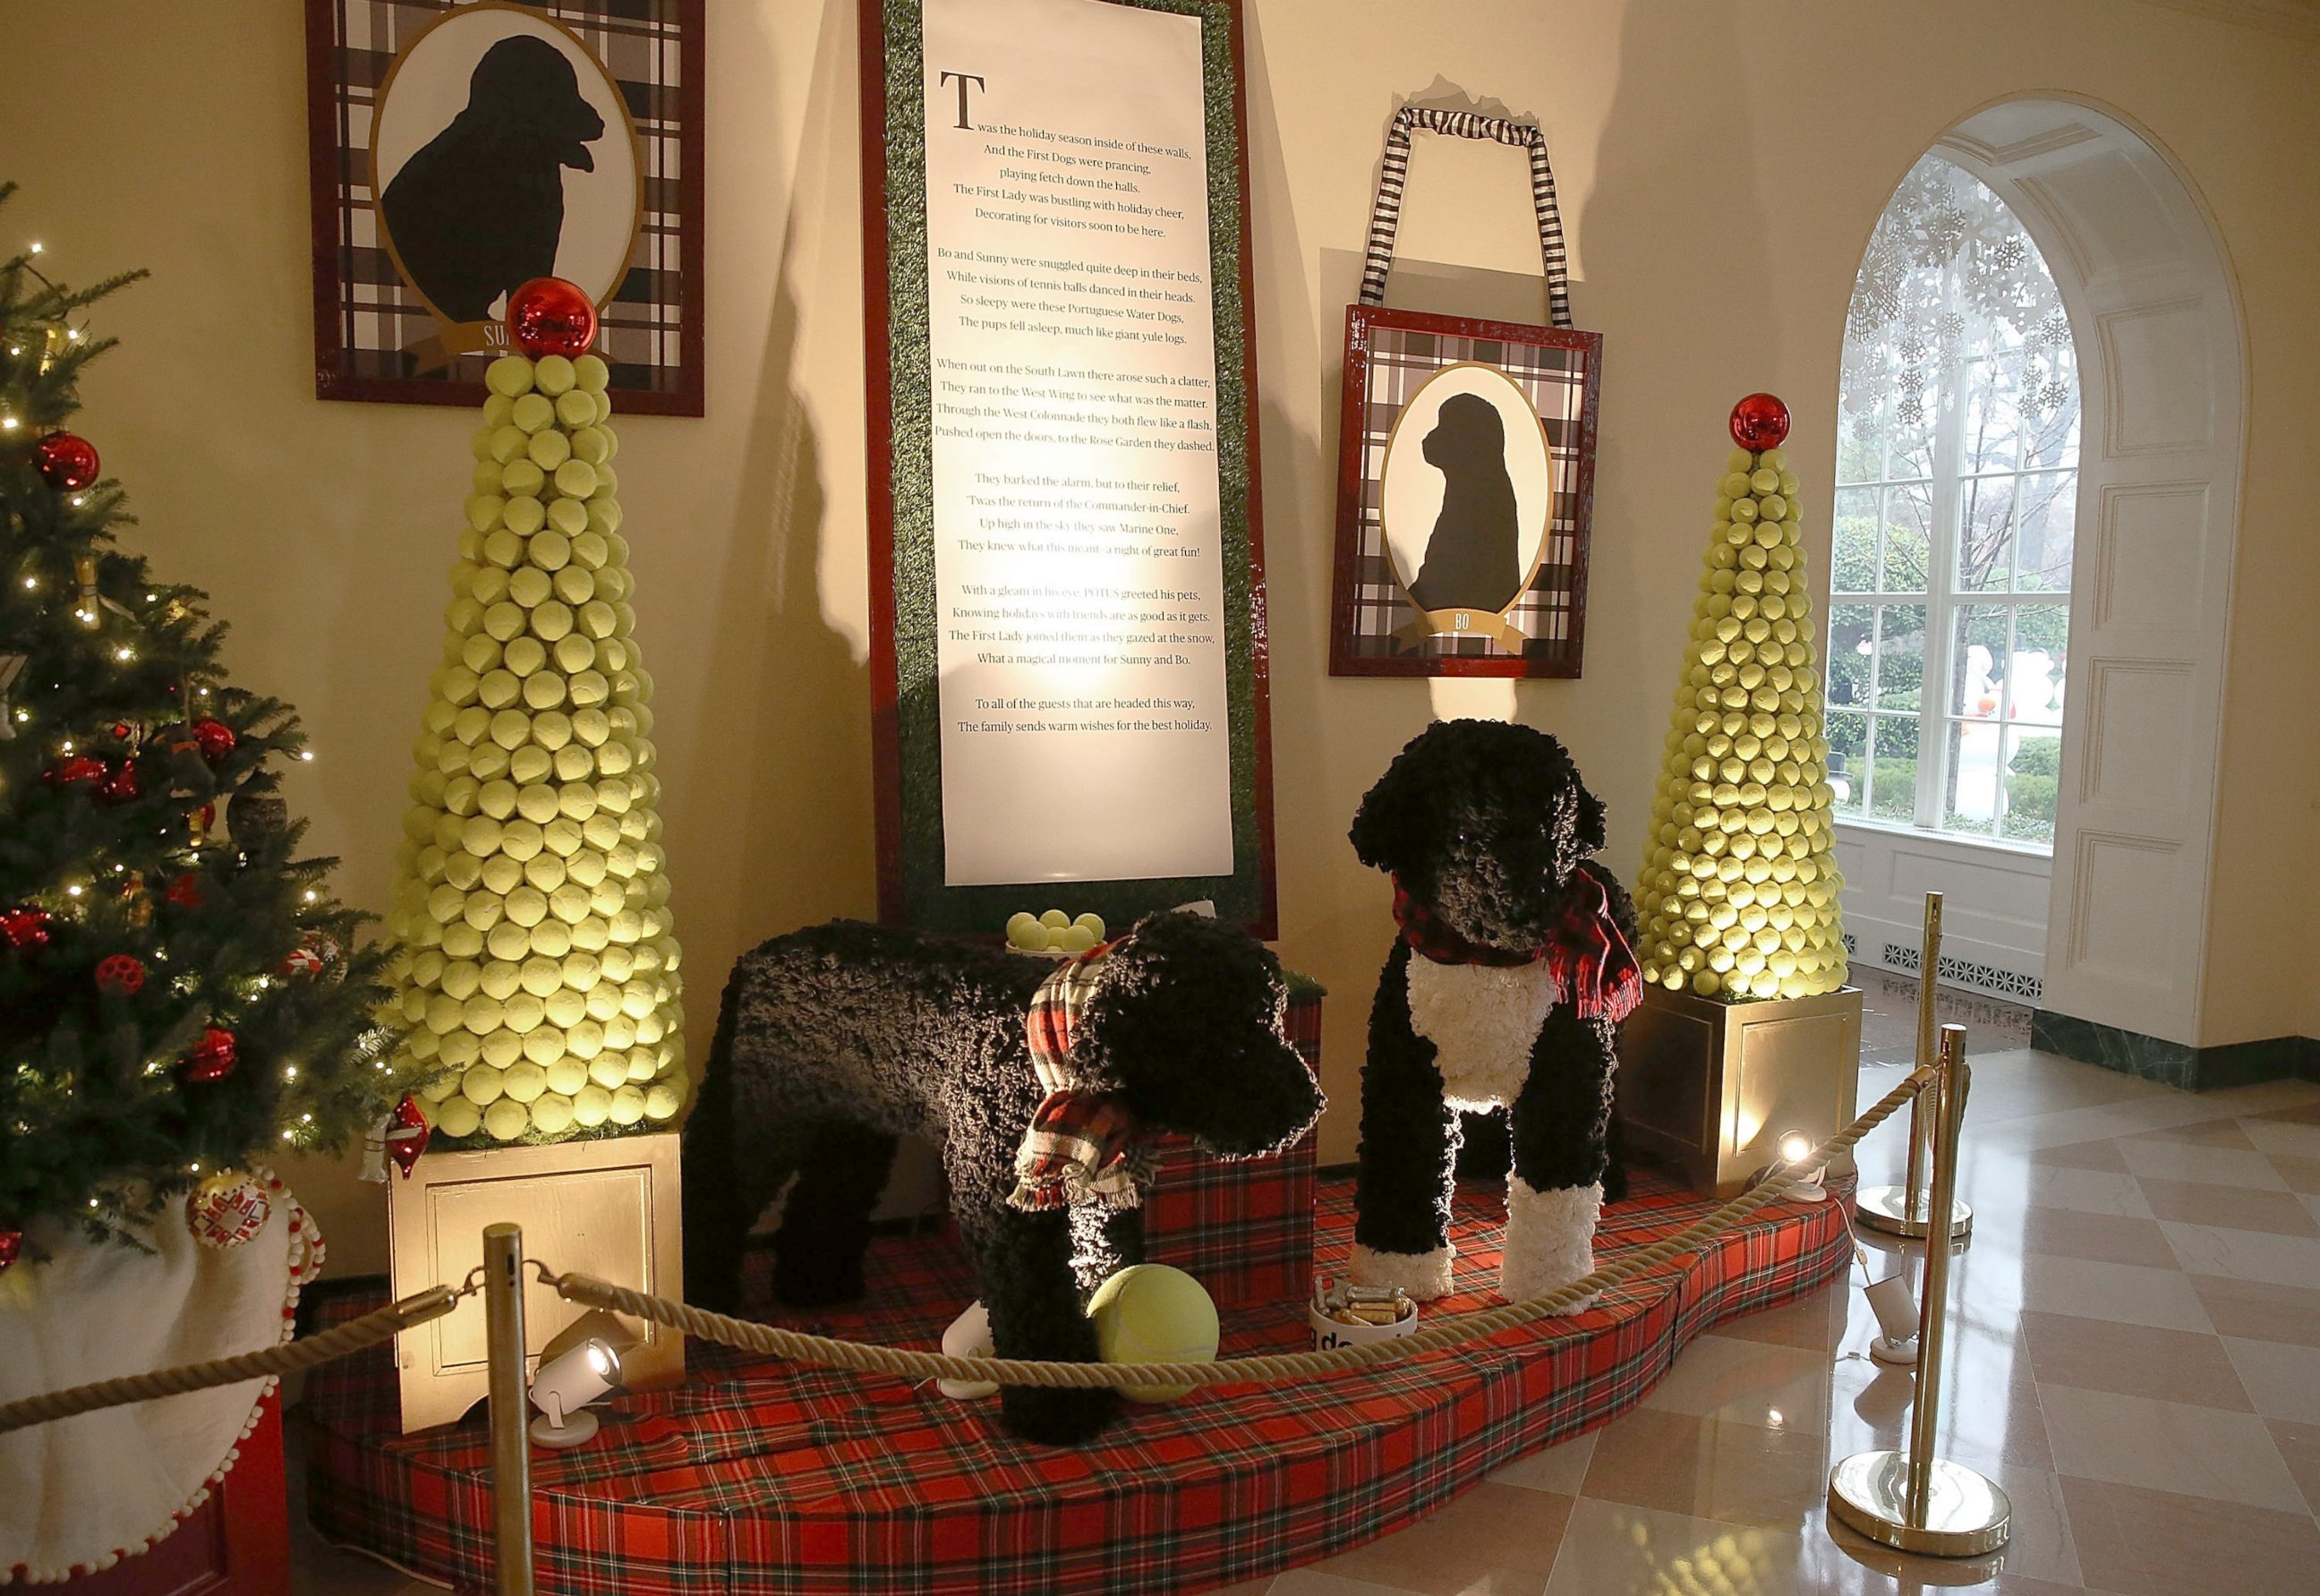 Holiday decorations at the white house are displayed during a press - A Display Of The Obama Family Dogs Bo And Sunny Are Seen During First Lady Michelle Obama S Preview Of The 2015 Holiday Decor At The White House Dec